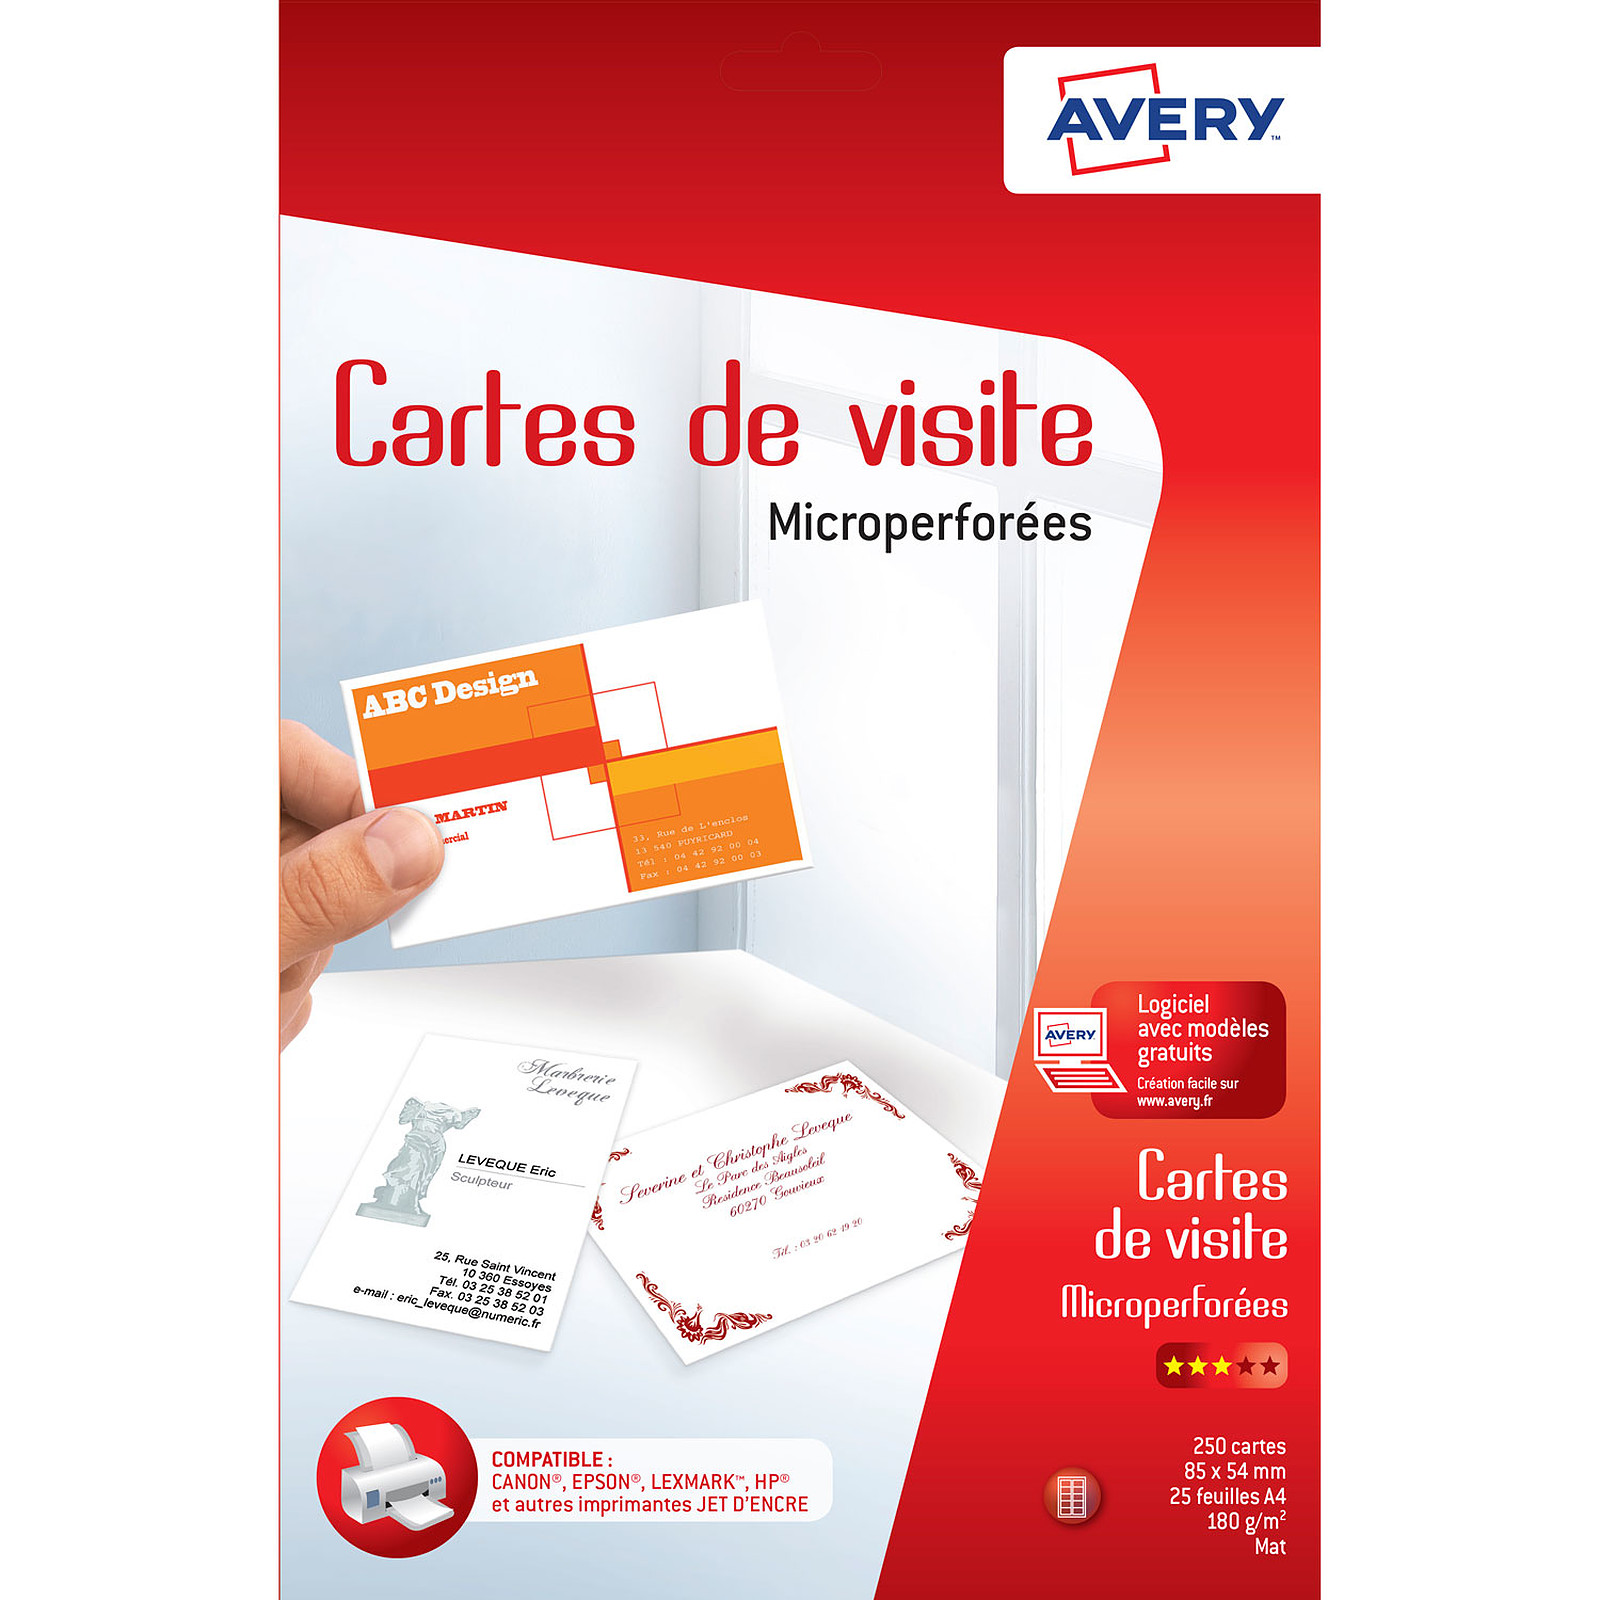 Avery QuickClean 250 Cartes De Visite 85 X 54 Mm Microperforees Mates